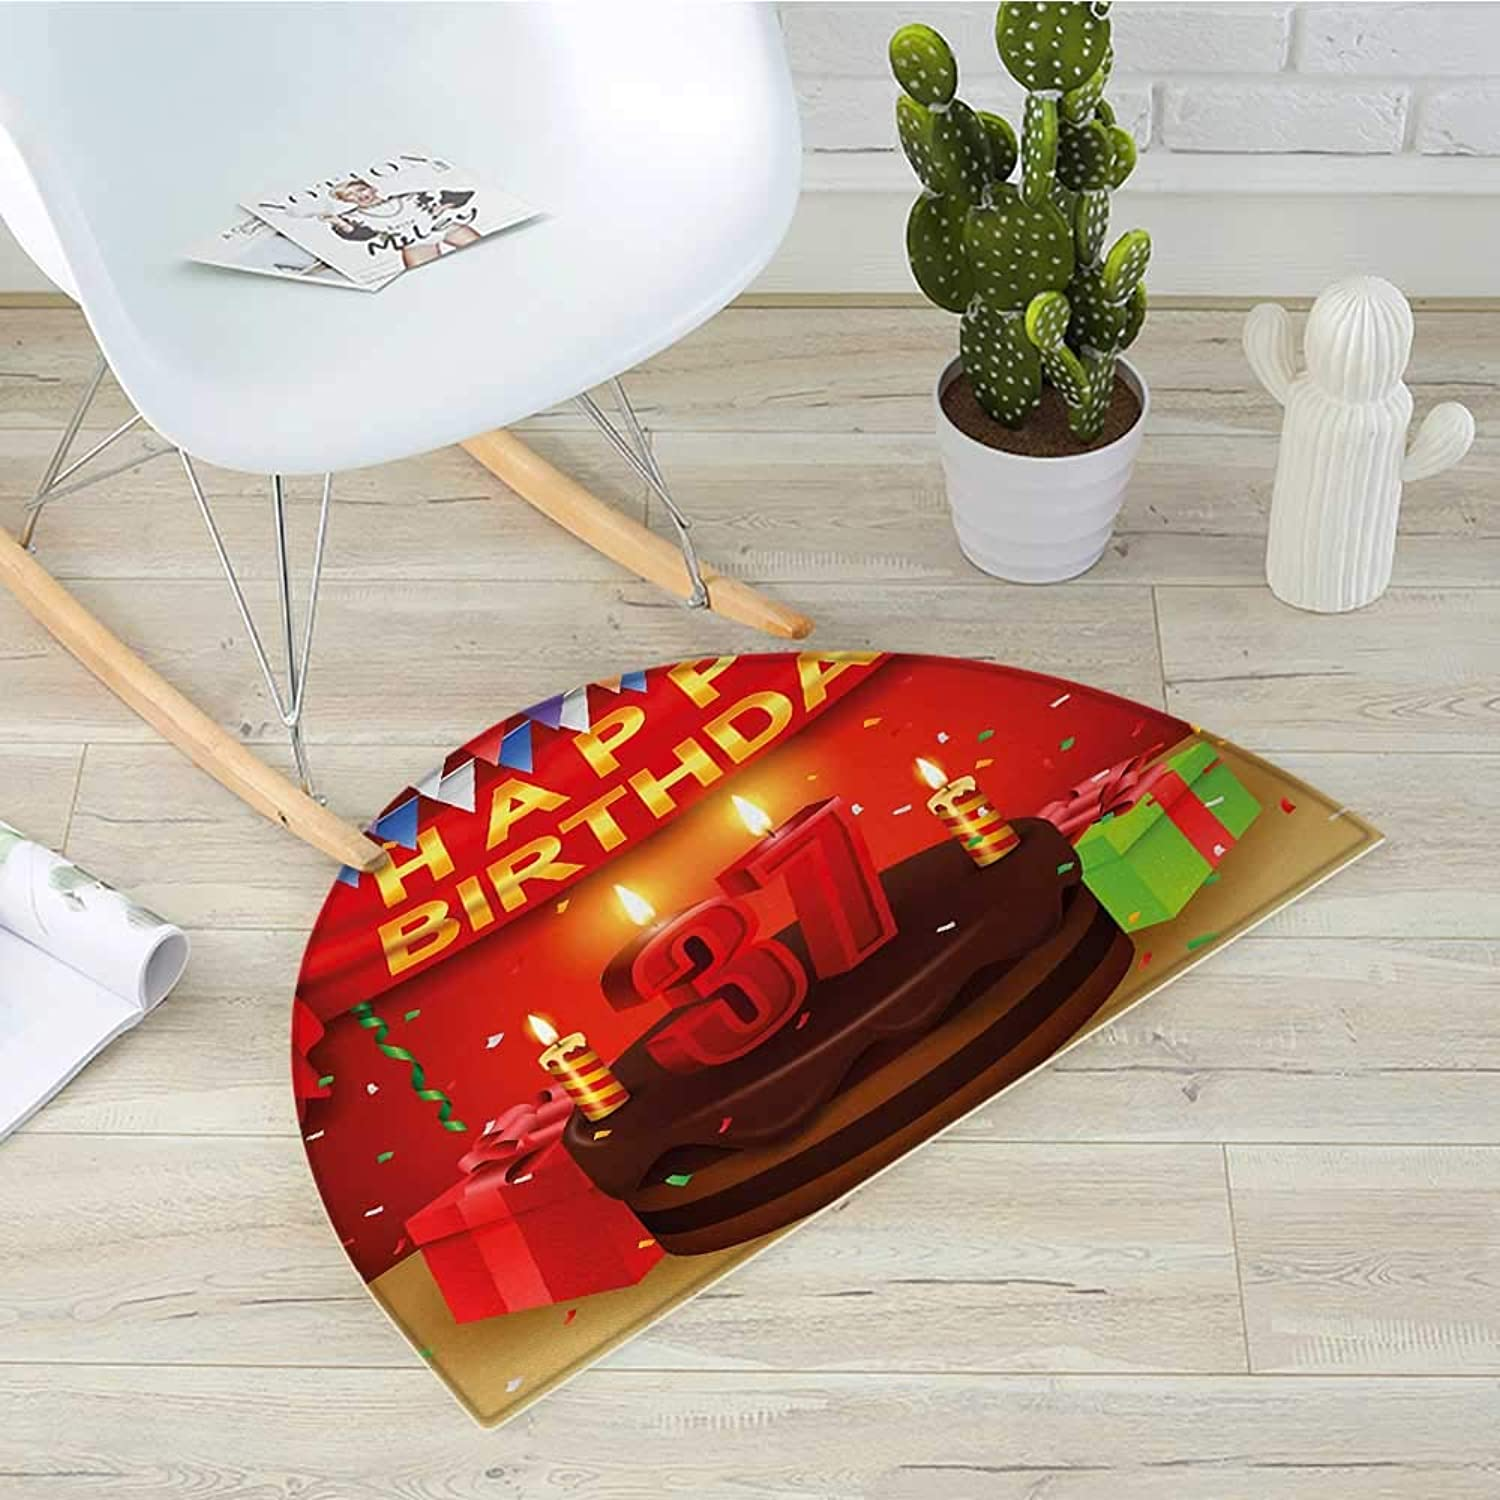 37th Birthday Half Round Door mats Chocolate Cake Gifts Balloons Flag Cute Icons Candles Artsy Design Image Bathroom Mat H 39.3  xD 59  Multicolor